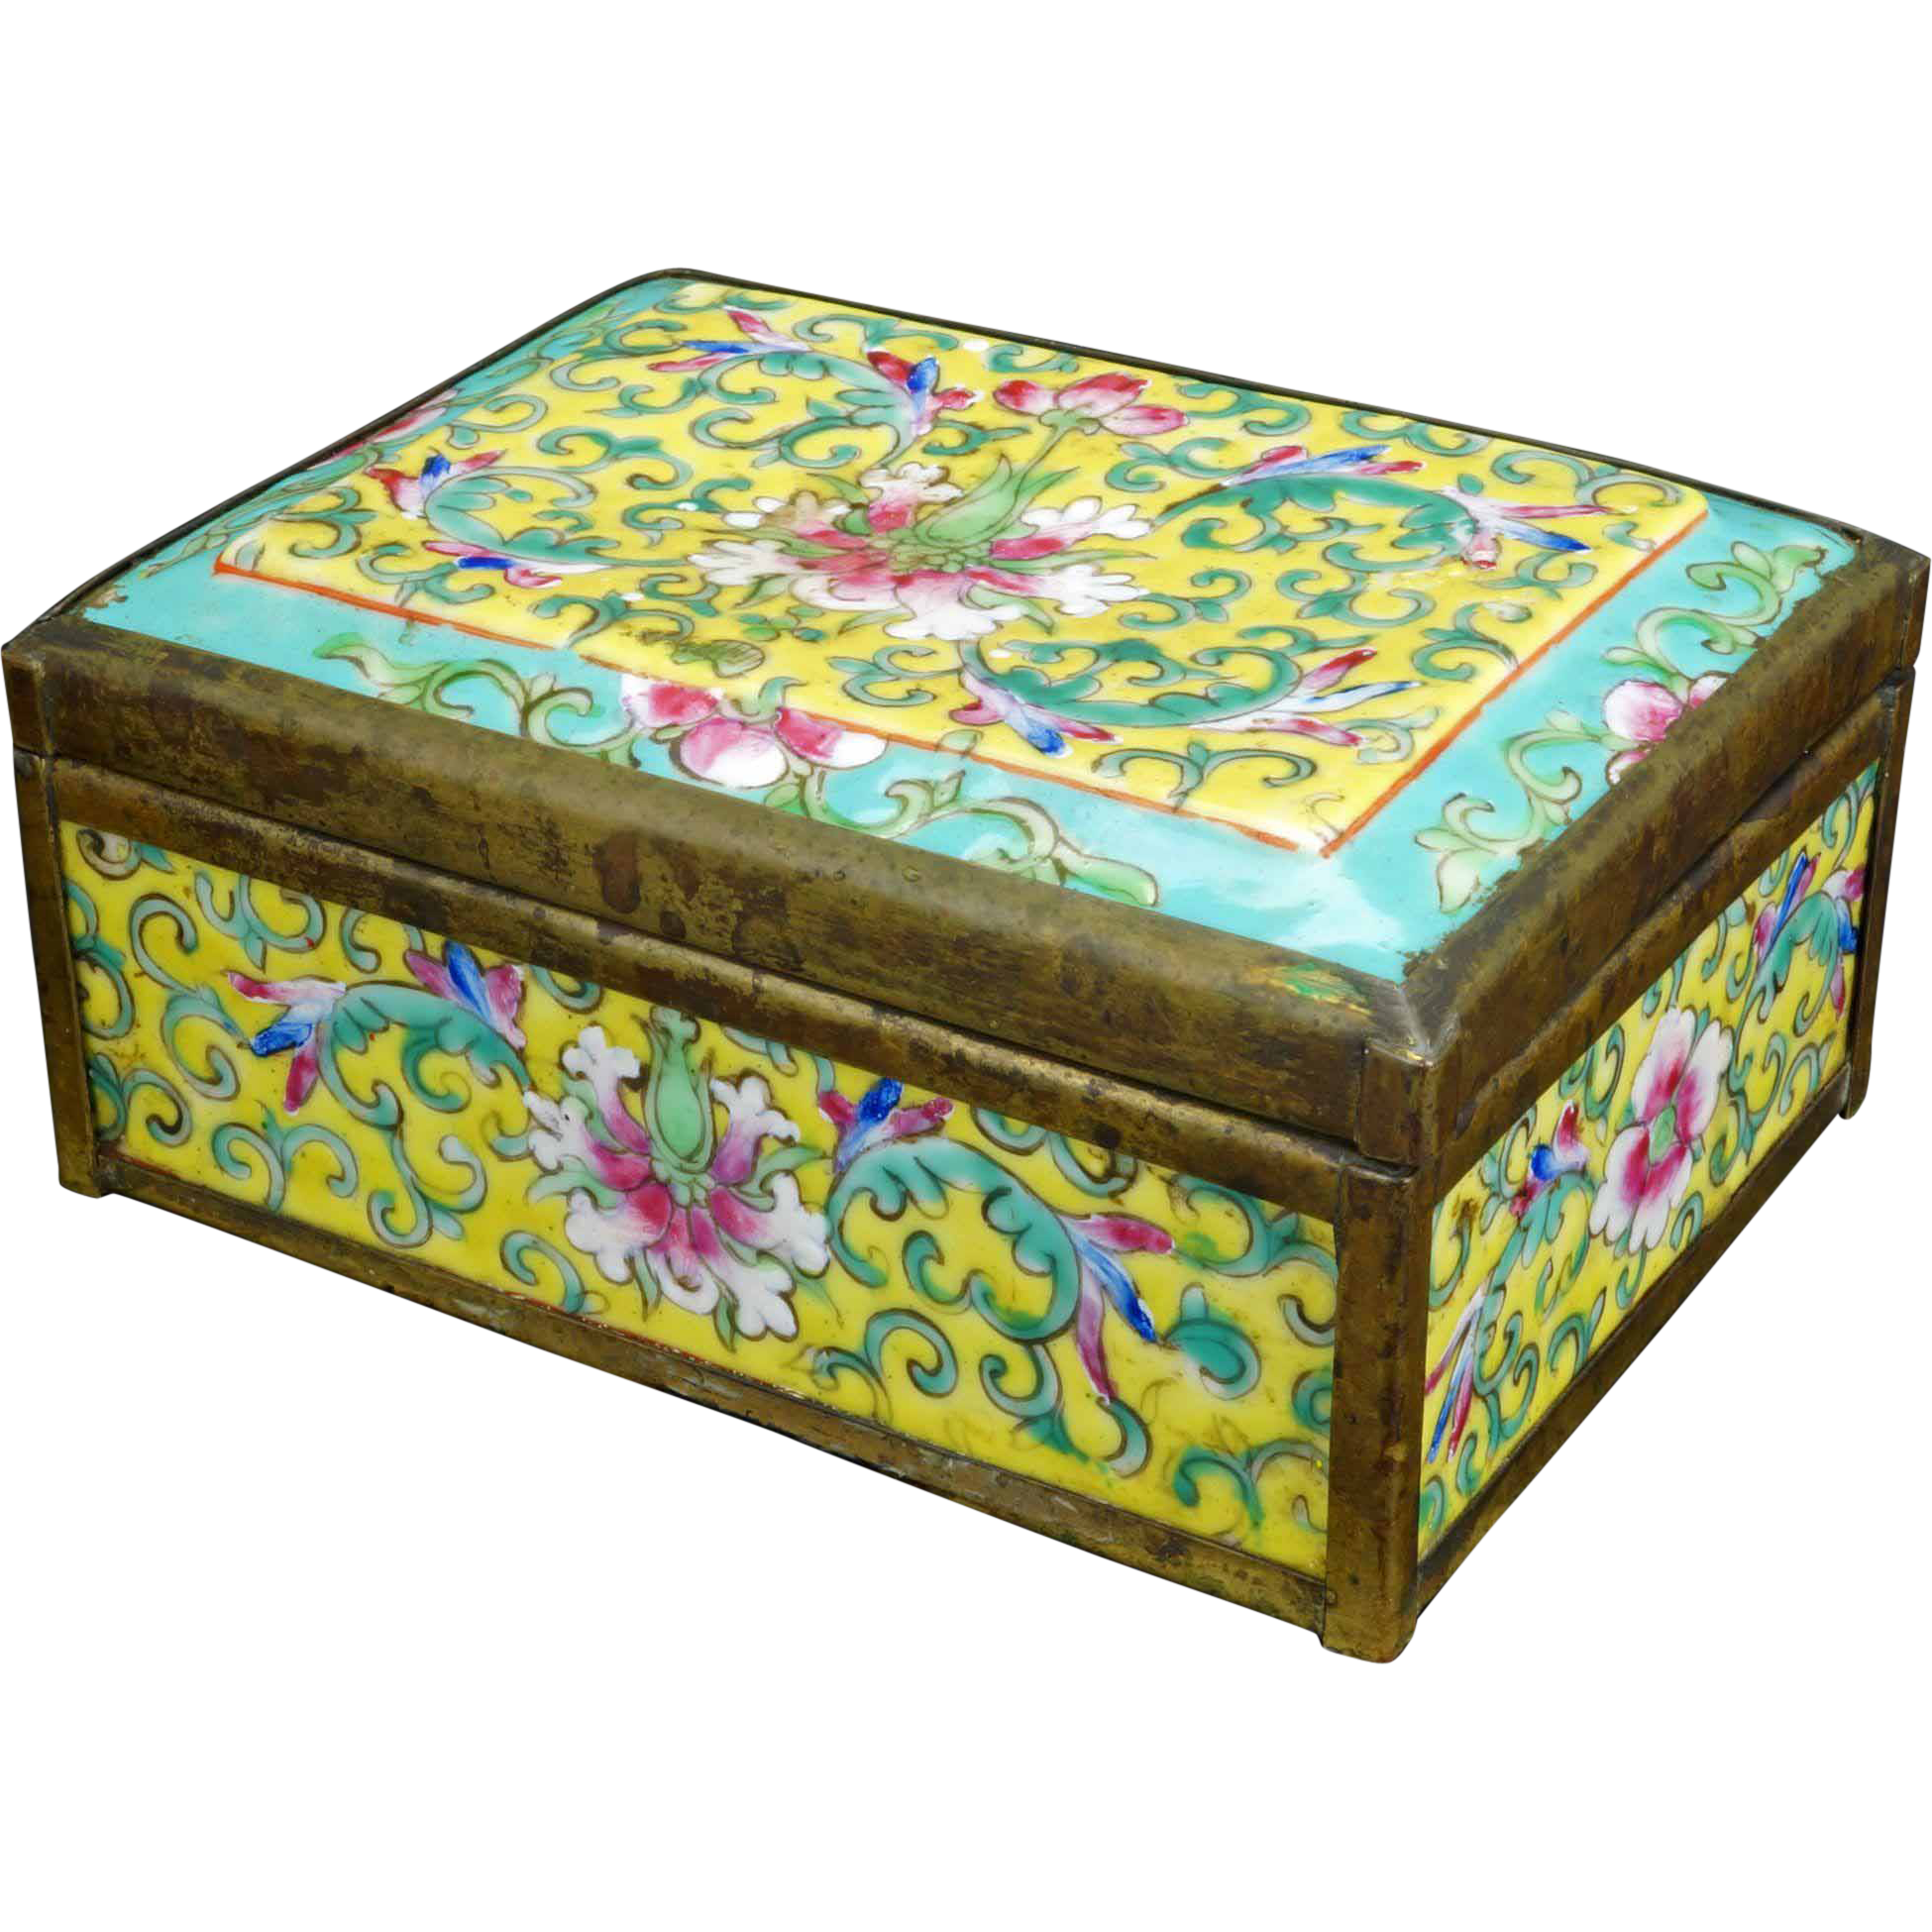 Antique Chinese porcelain Famille rose box with brass work circa 1900